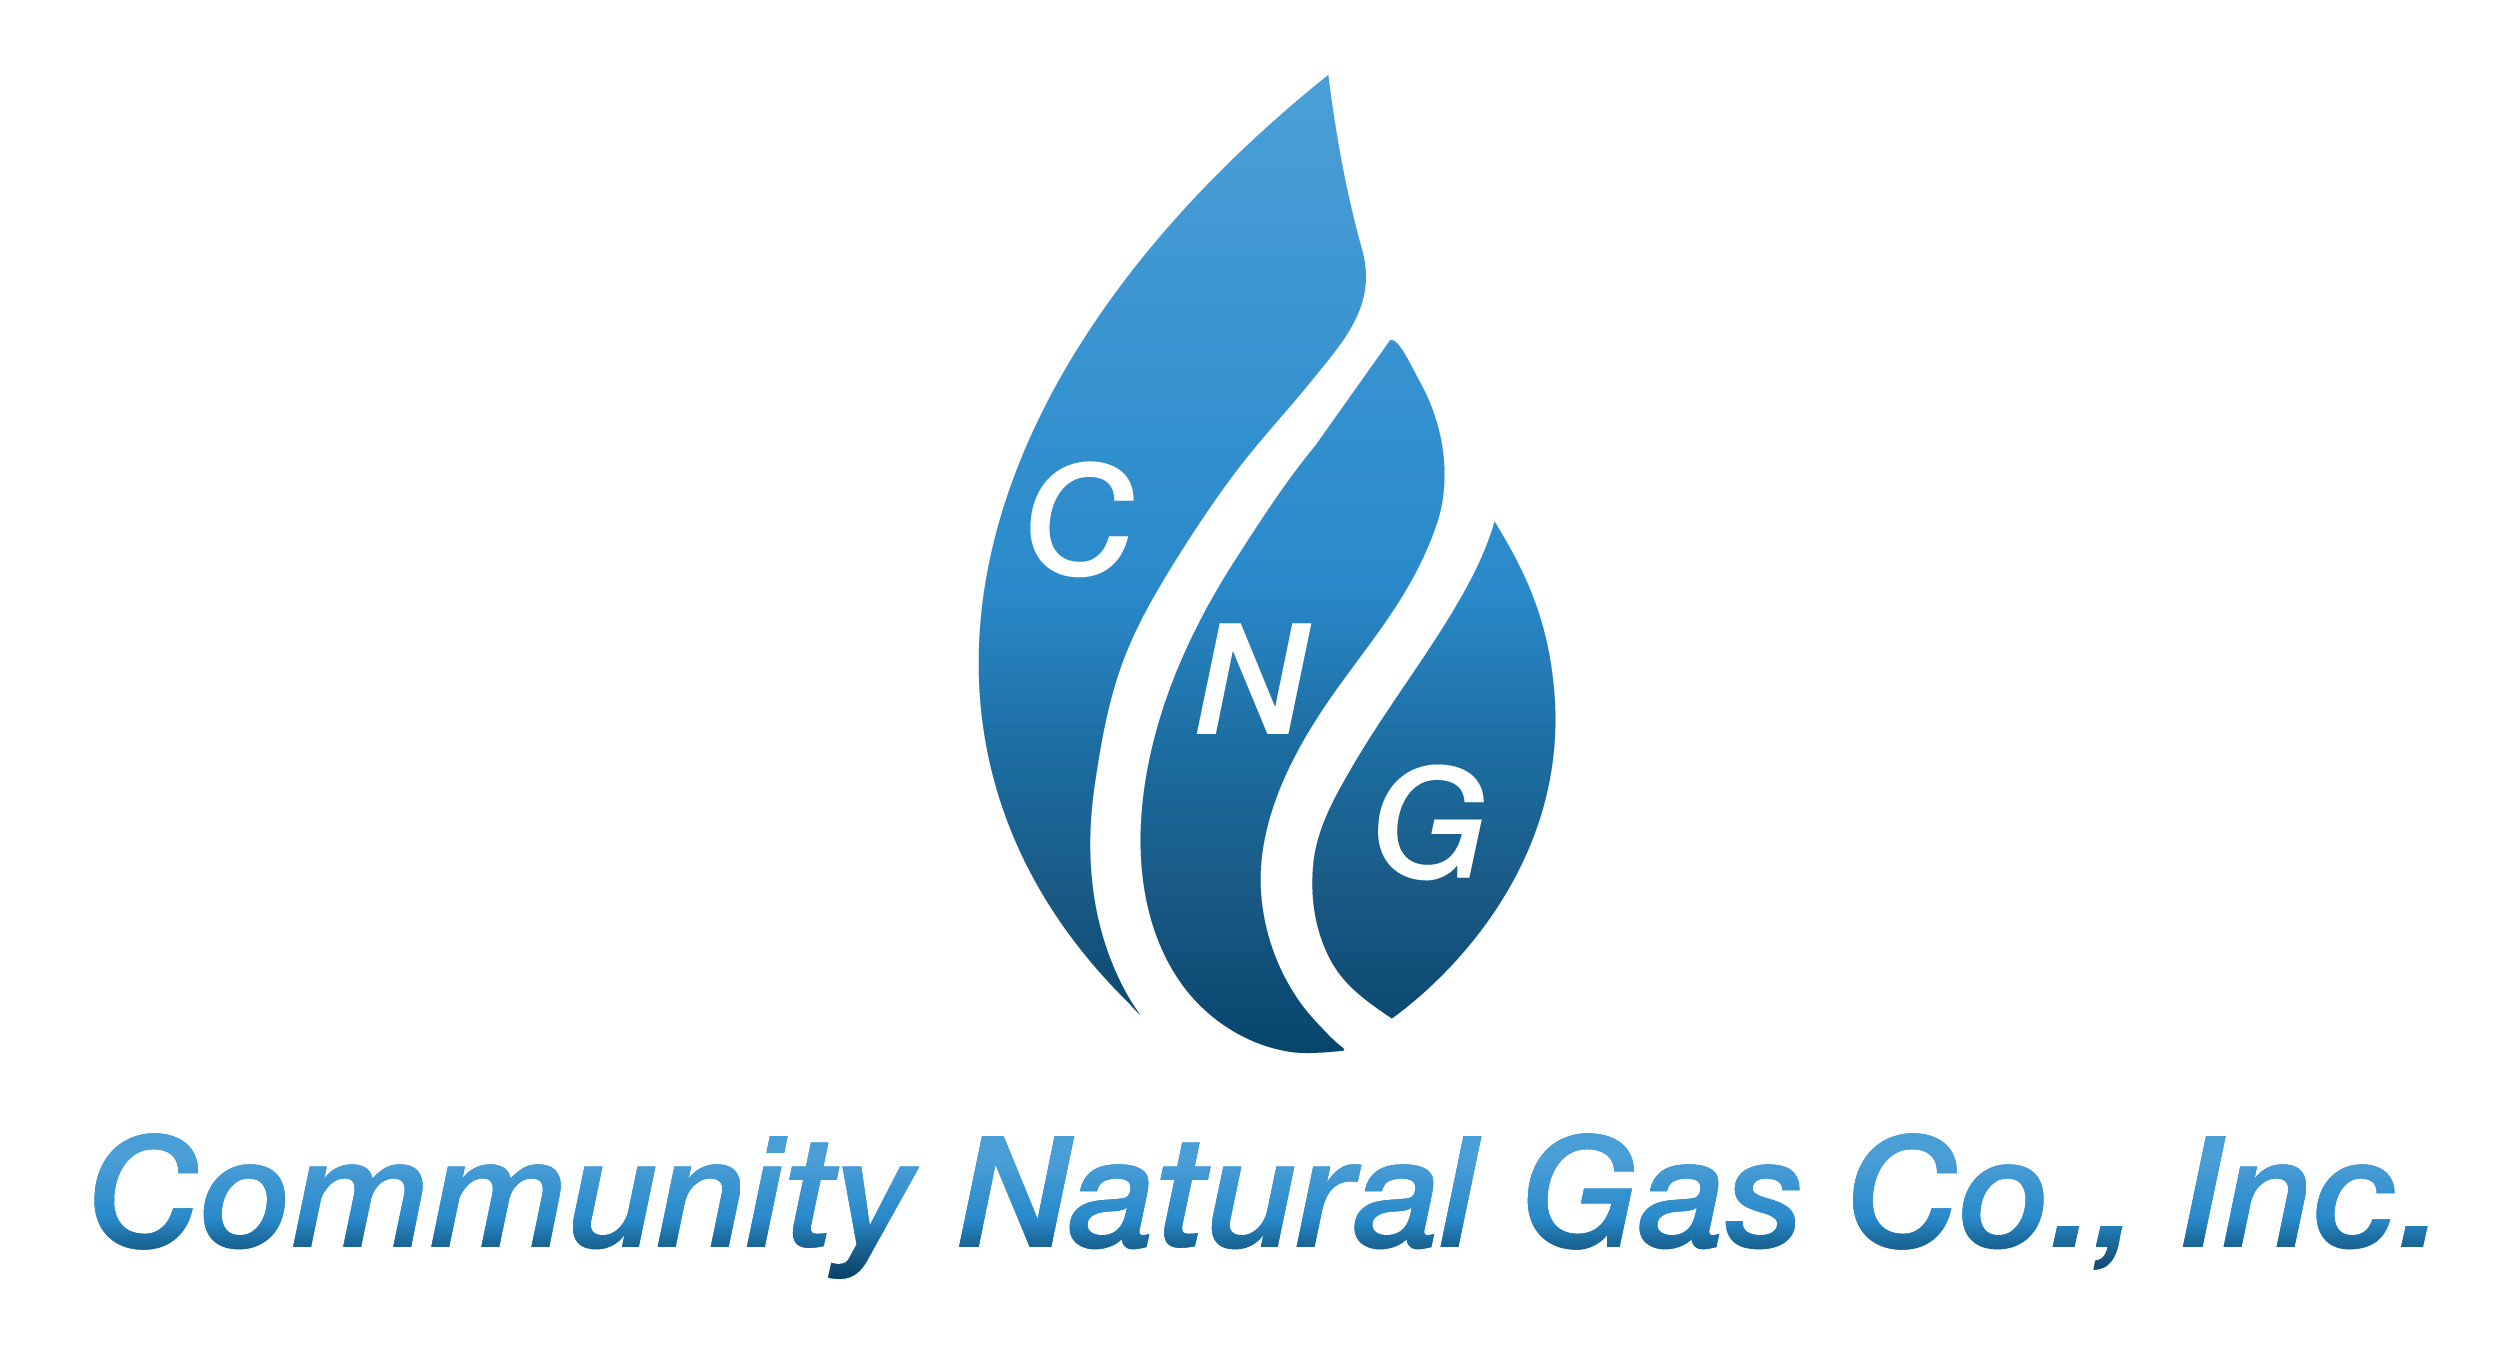 Community Natural Gas